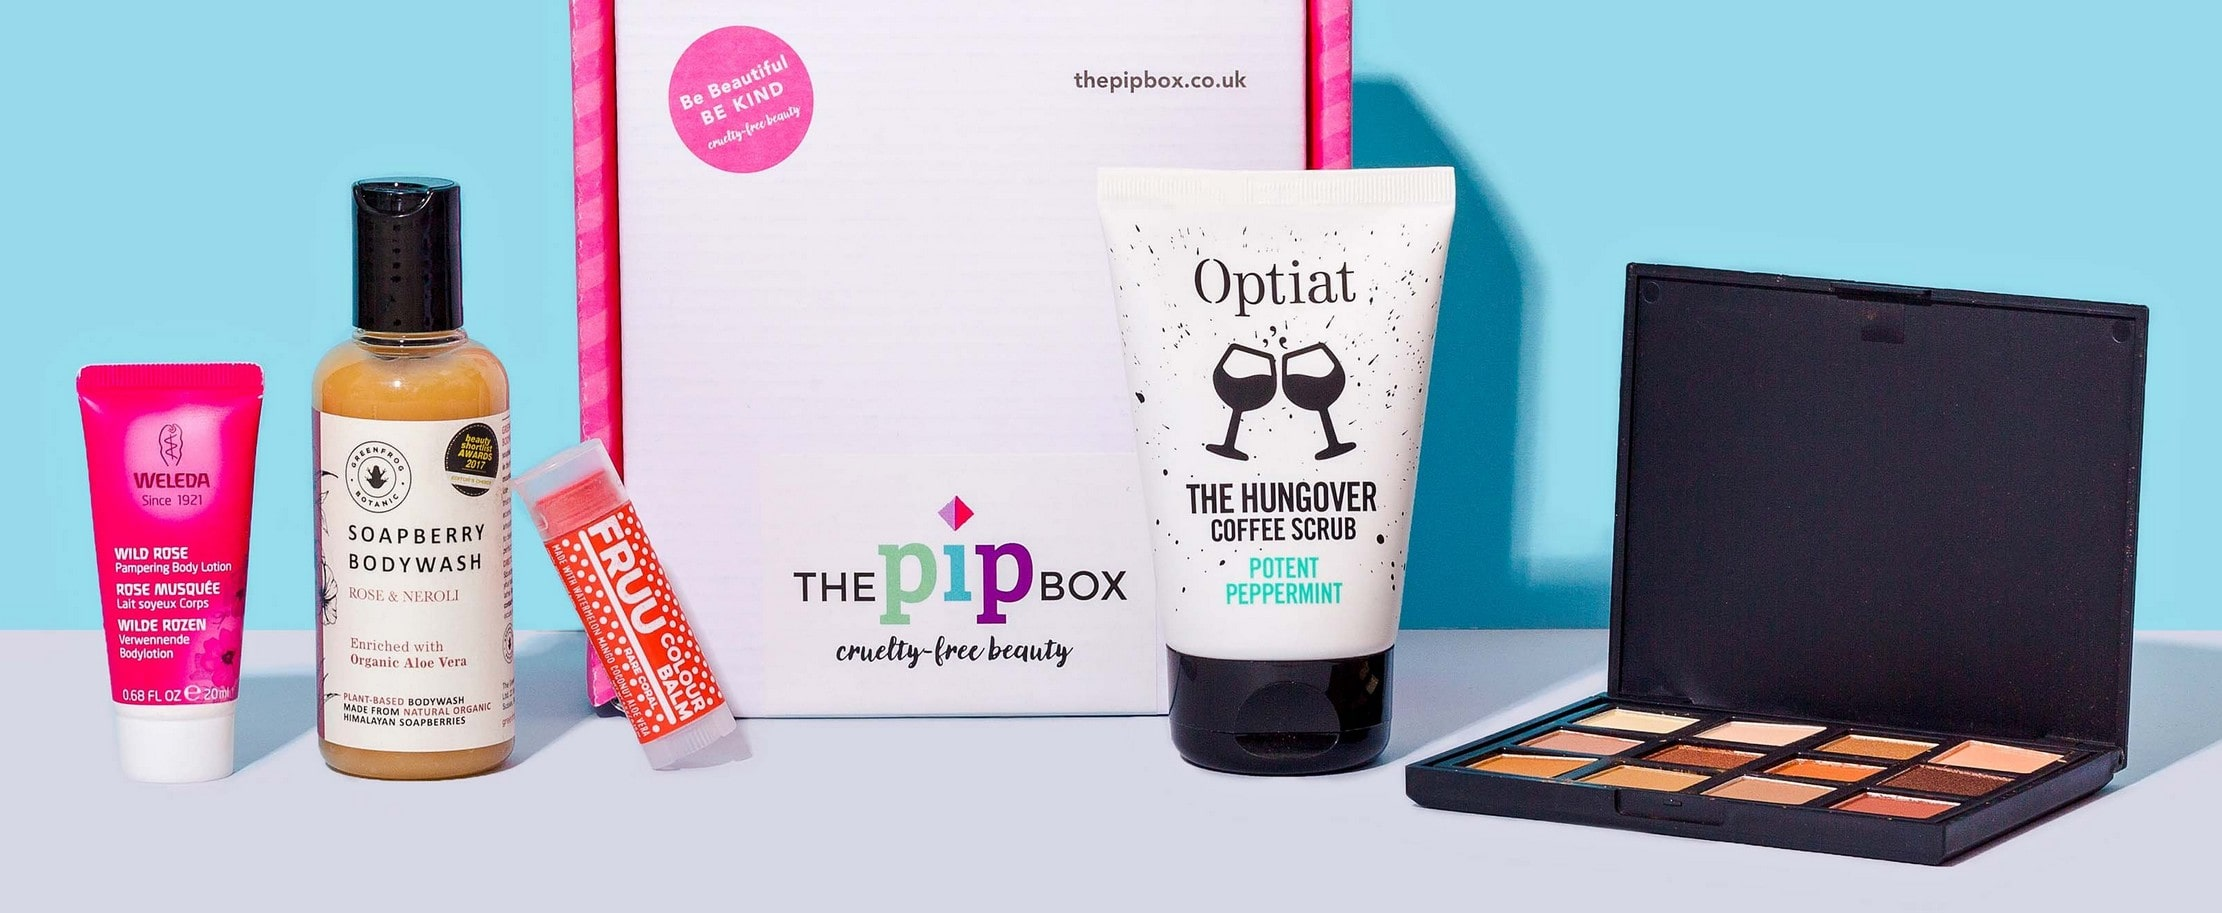 Beauty subscription boxes: The Pip Box with cosmetic products on a blue background.